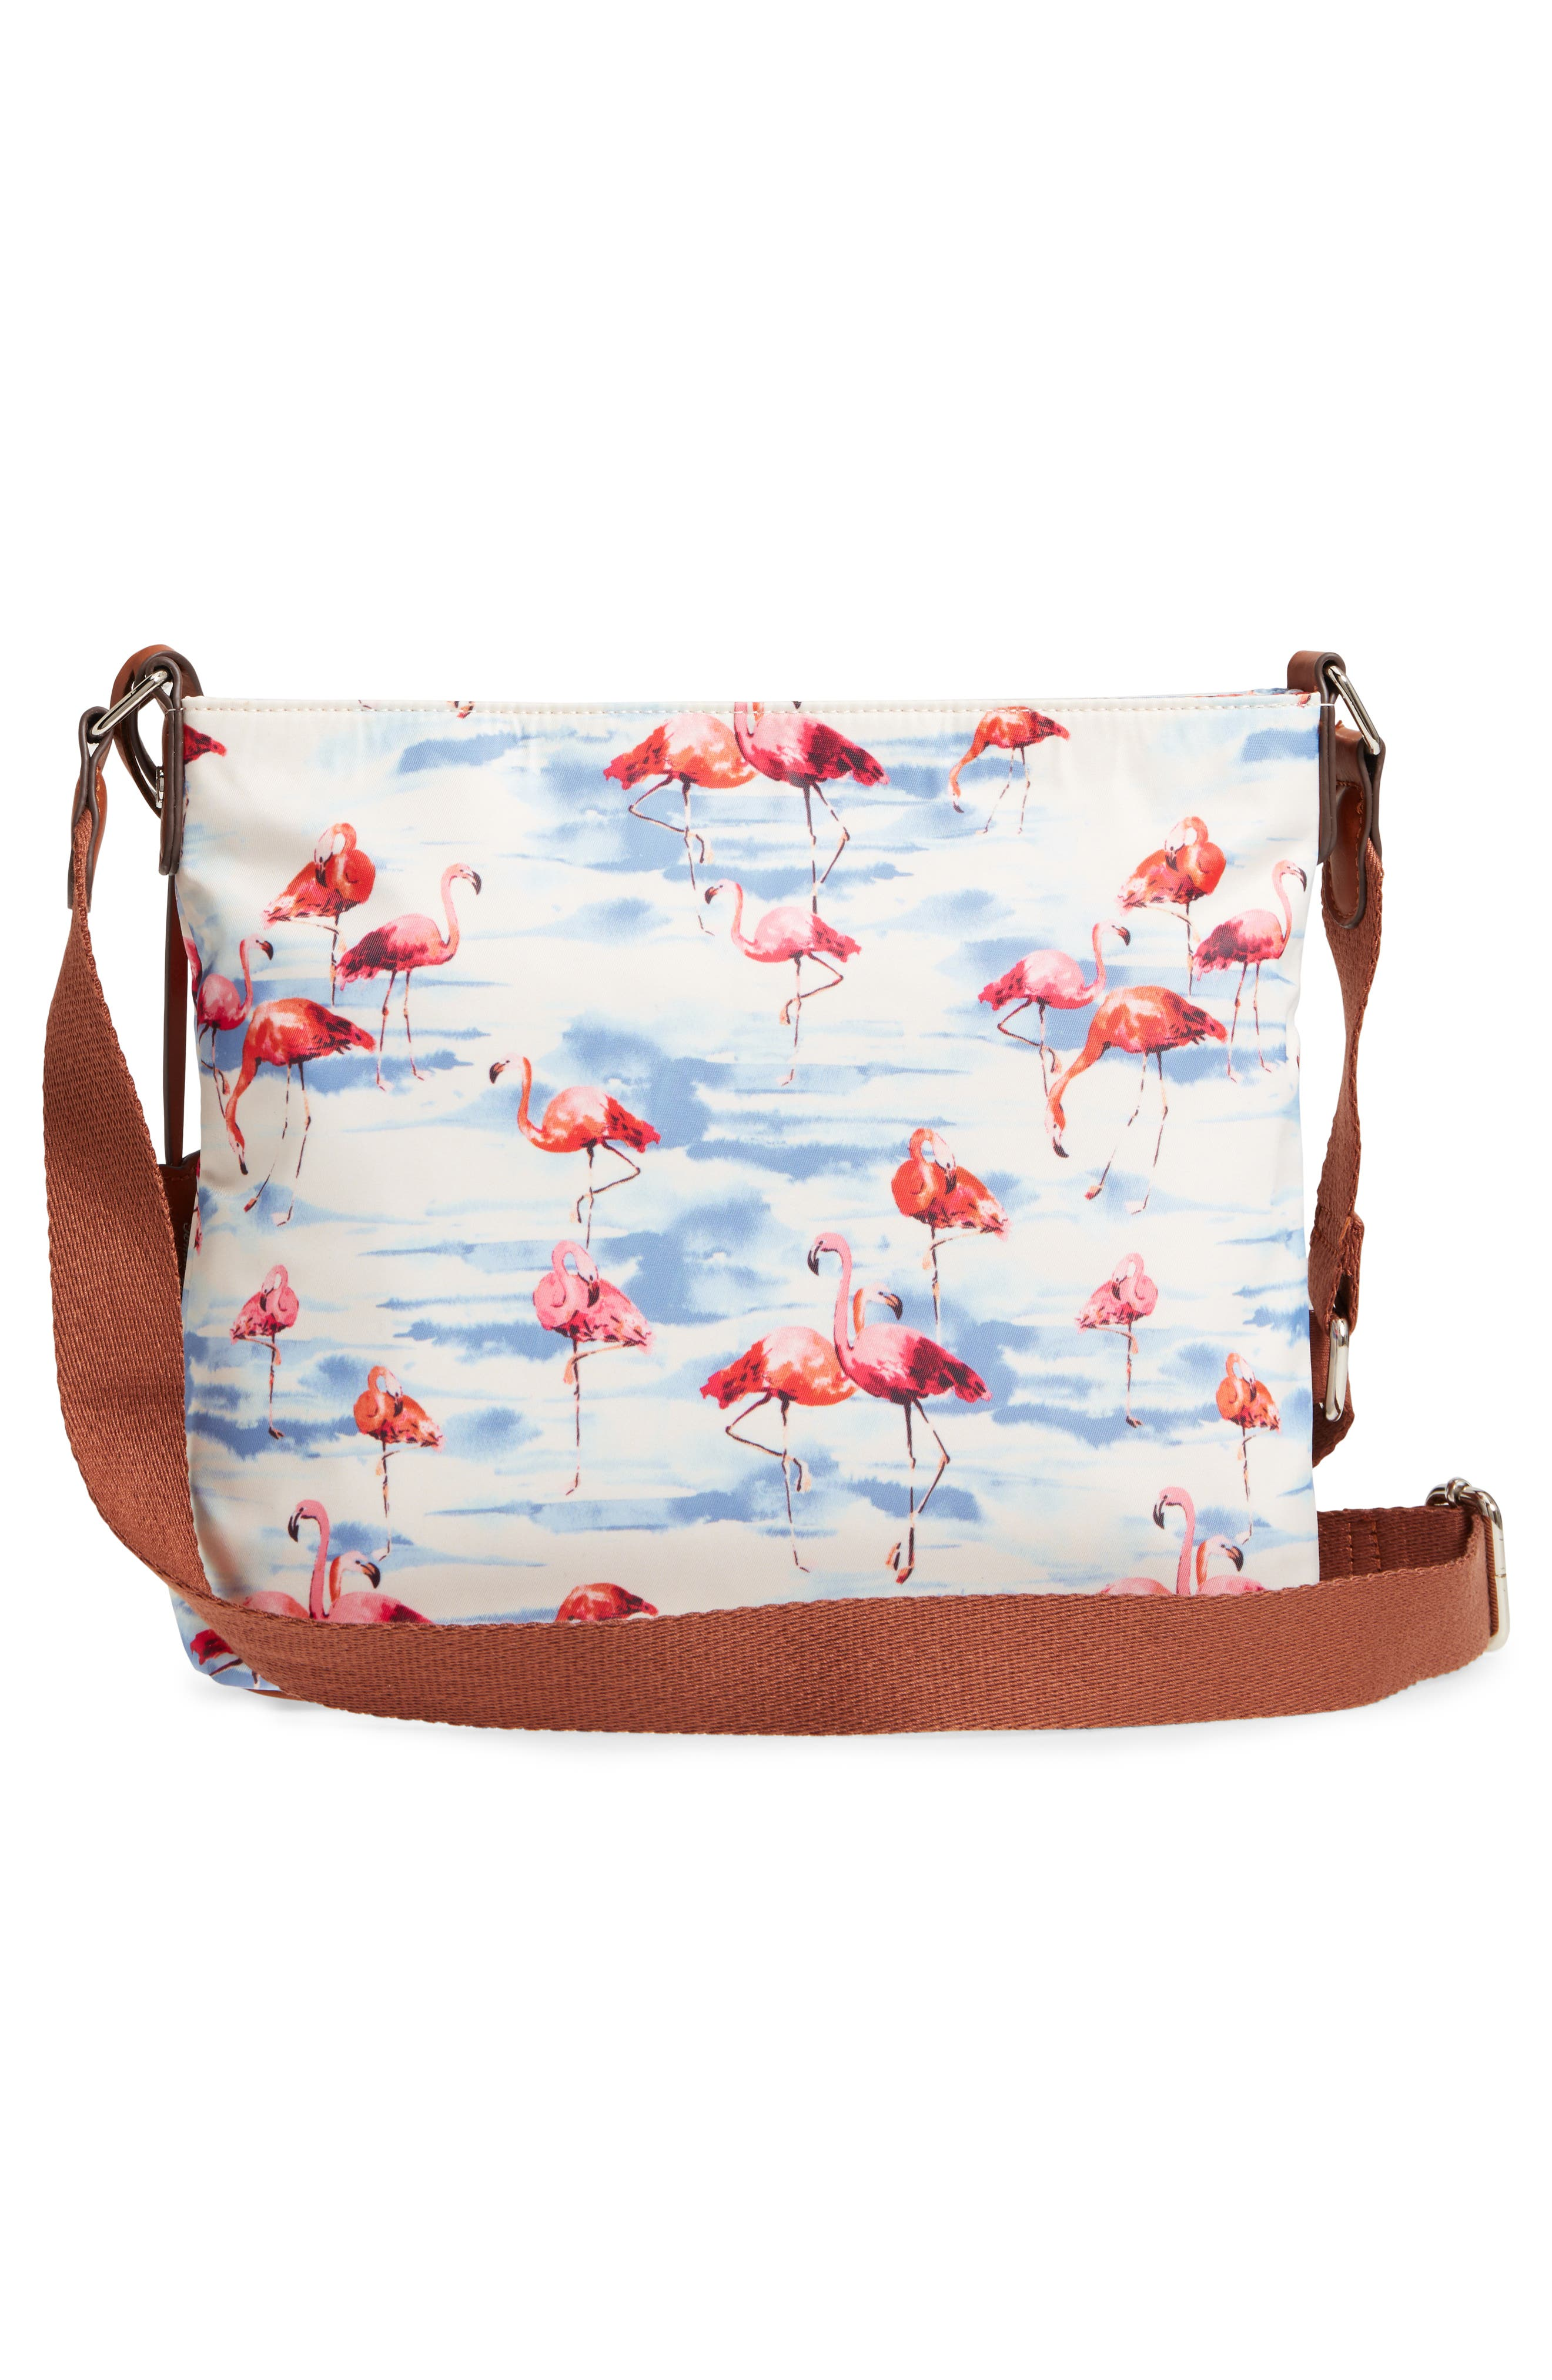 Siesta Key Waterproof Nylon Crossbody Bag,                             Alternate thumbnail 3, color,                             Flamingo Squad